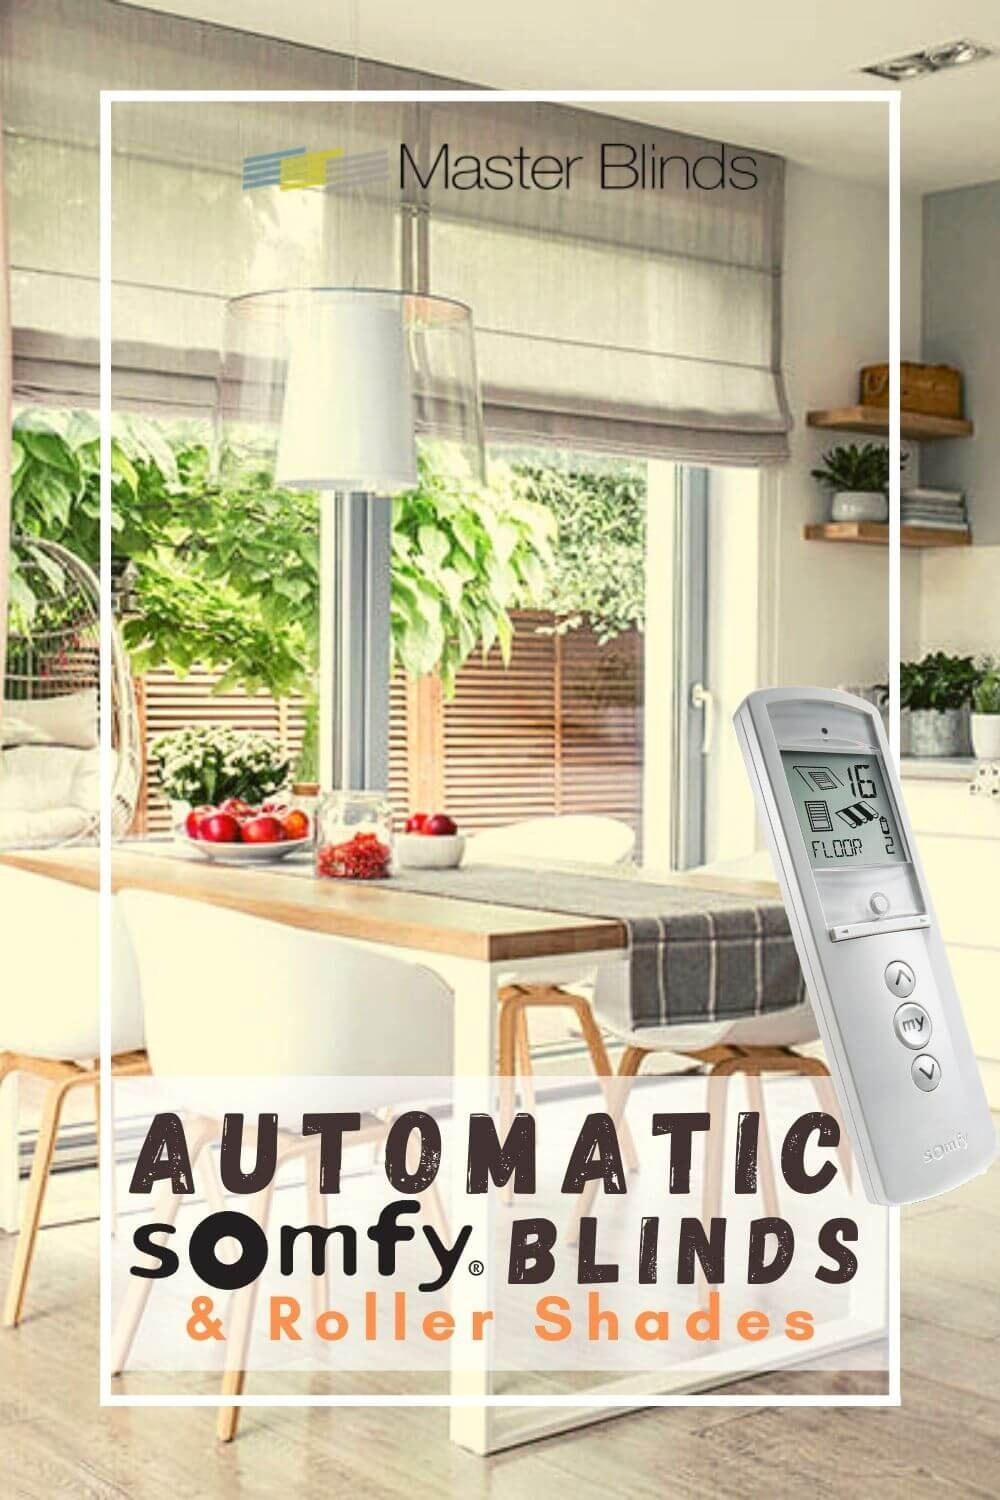 Automatic Somfy Blinds Roller Shades In 2020 Somfy Blinds Motorized Blinds Motorized Window Treatment